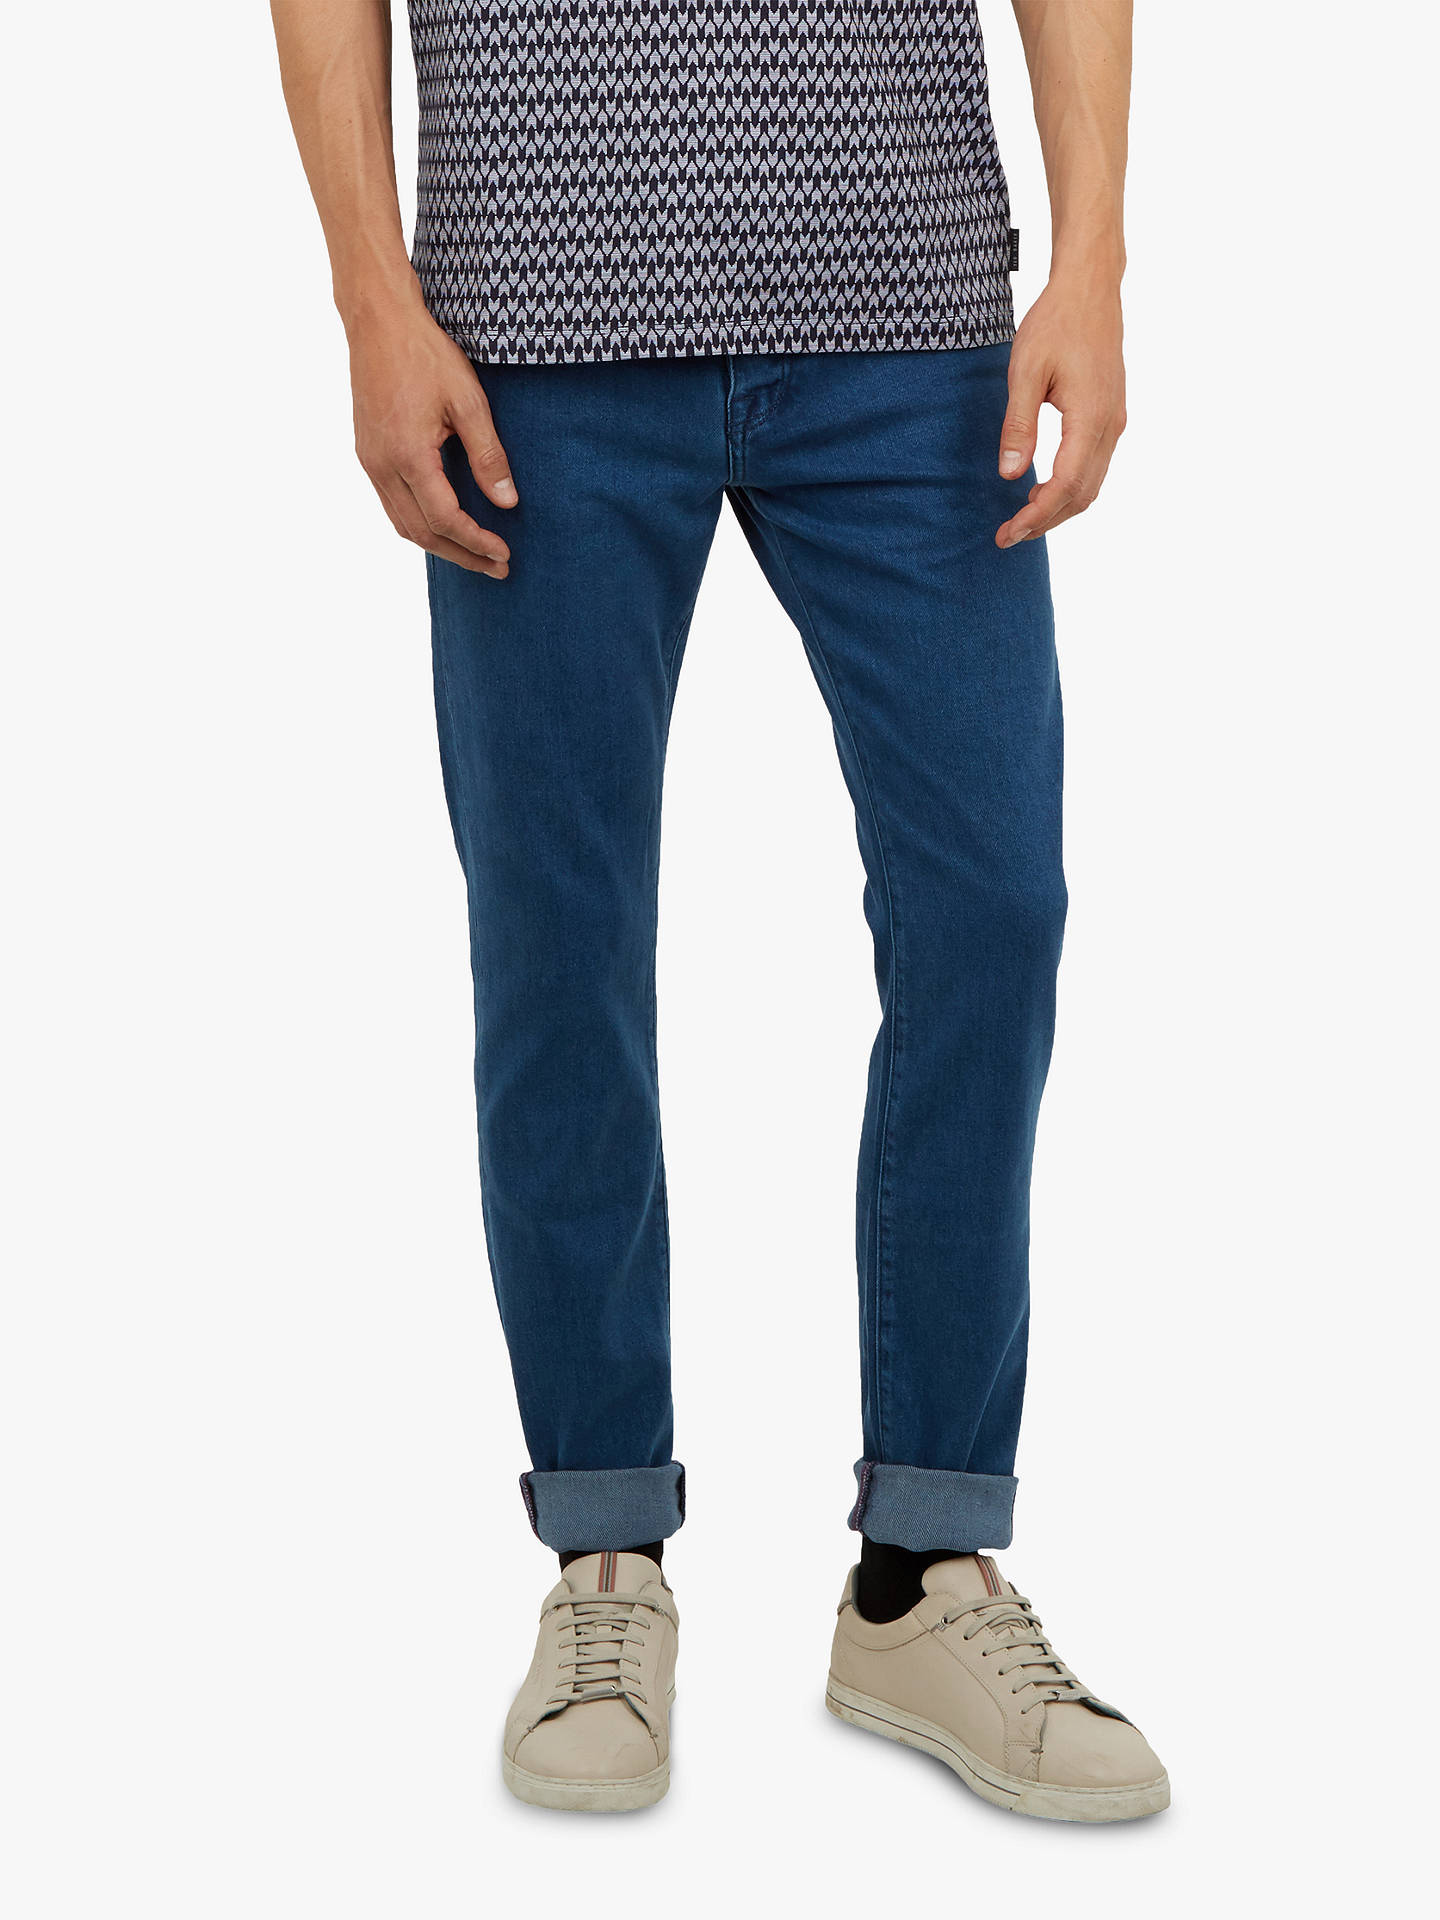 Buy Ted Baker Talma Tapered Jeans, Blue Denim, 32L Online at johnlewis.com